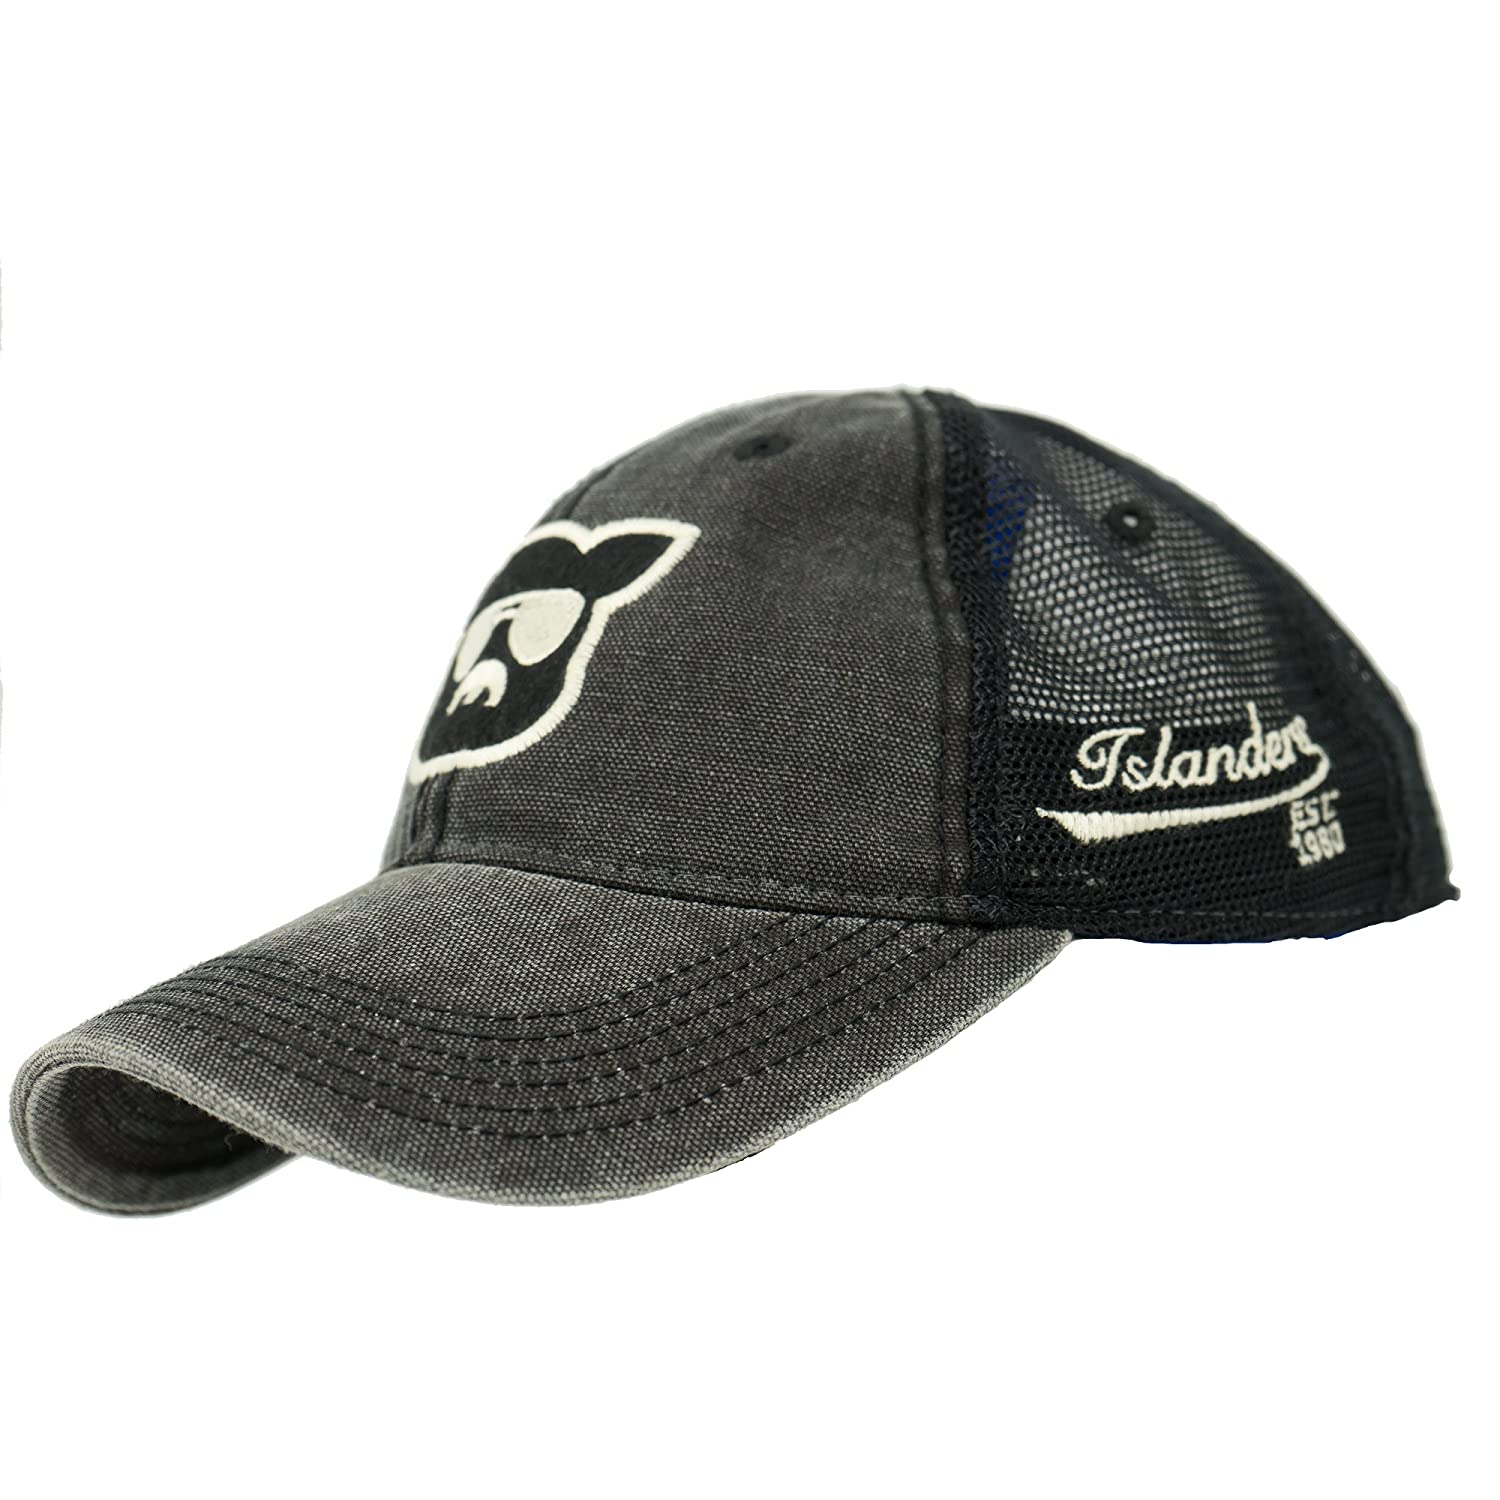 deeab8f800460 Amazon.com  Islanders Pig Face Old Favorite Trucker Hat